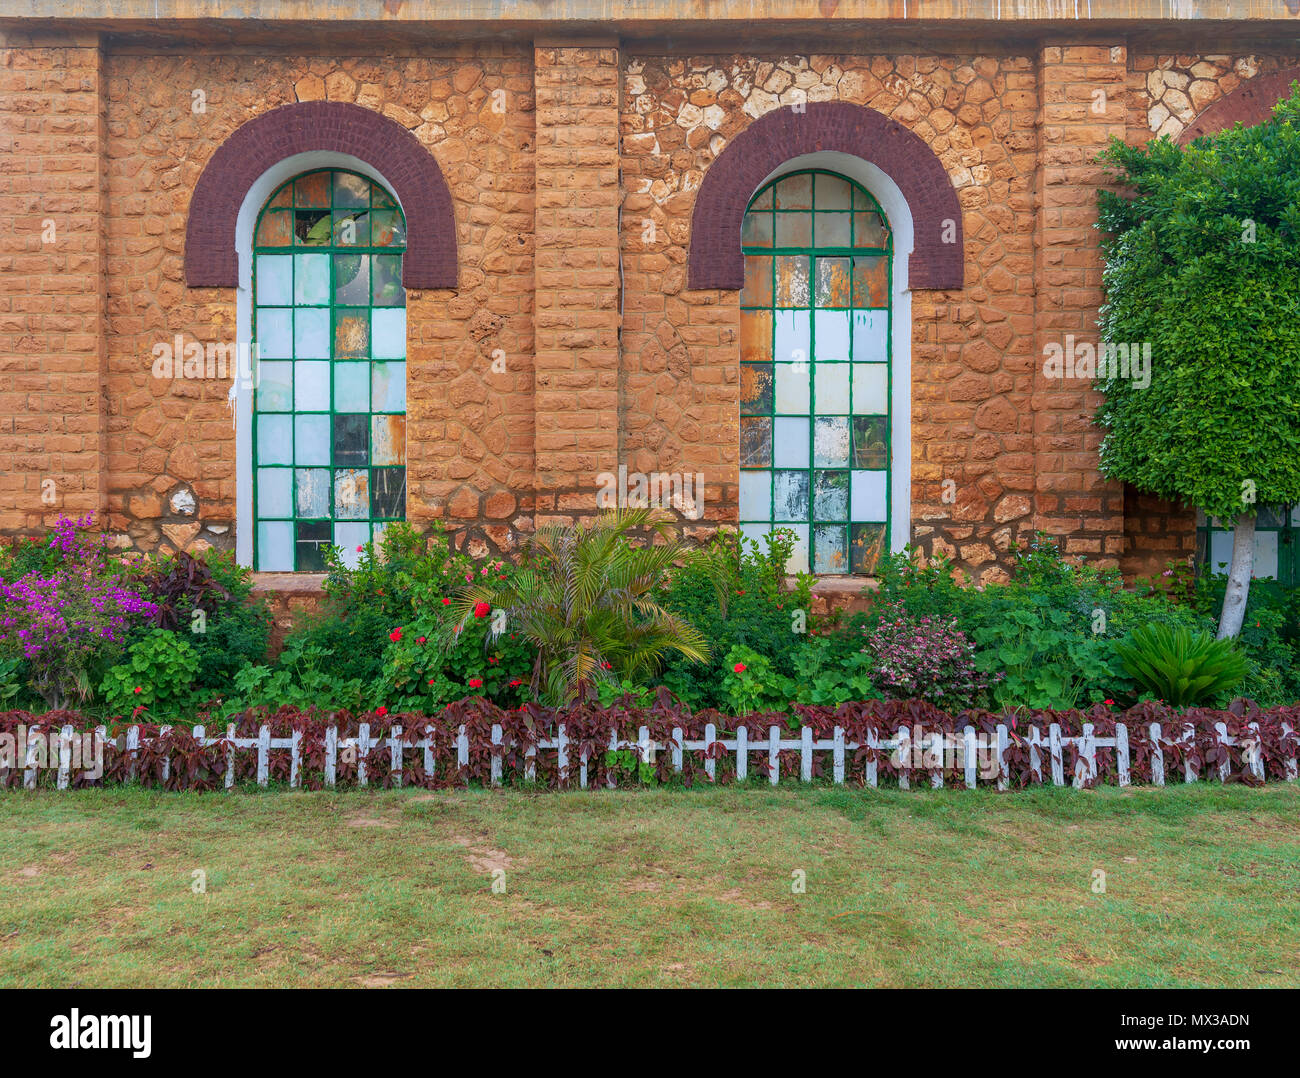 Orange colored bricks stone wall with two big old grunge windows covered with green metal grid, green grass floor, and plants at summer time, Montazah - Stock Image